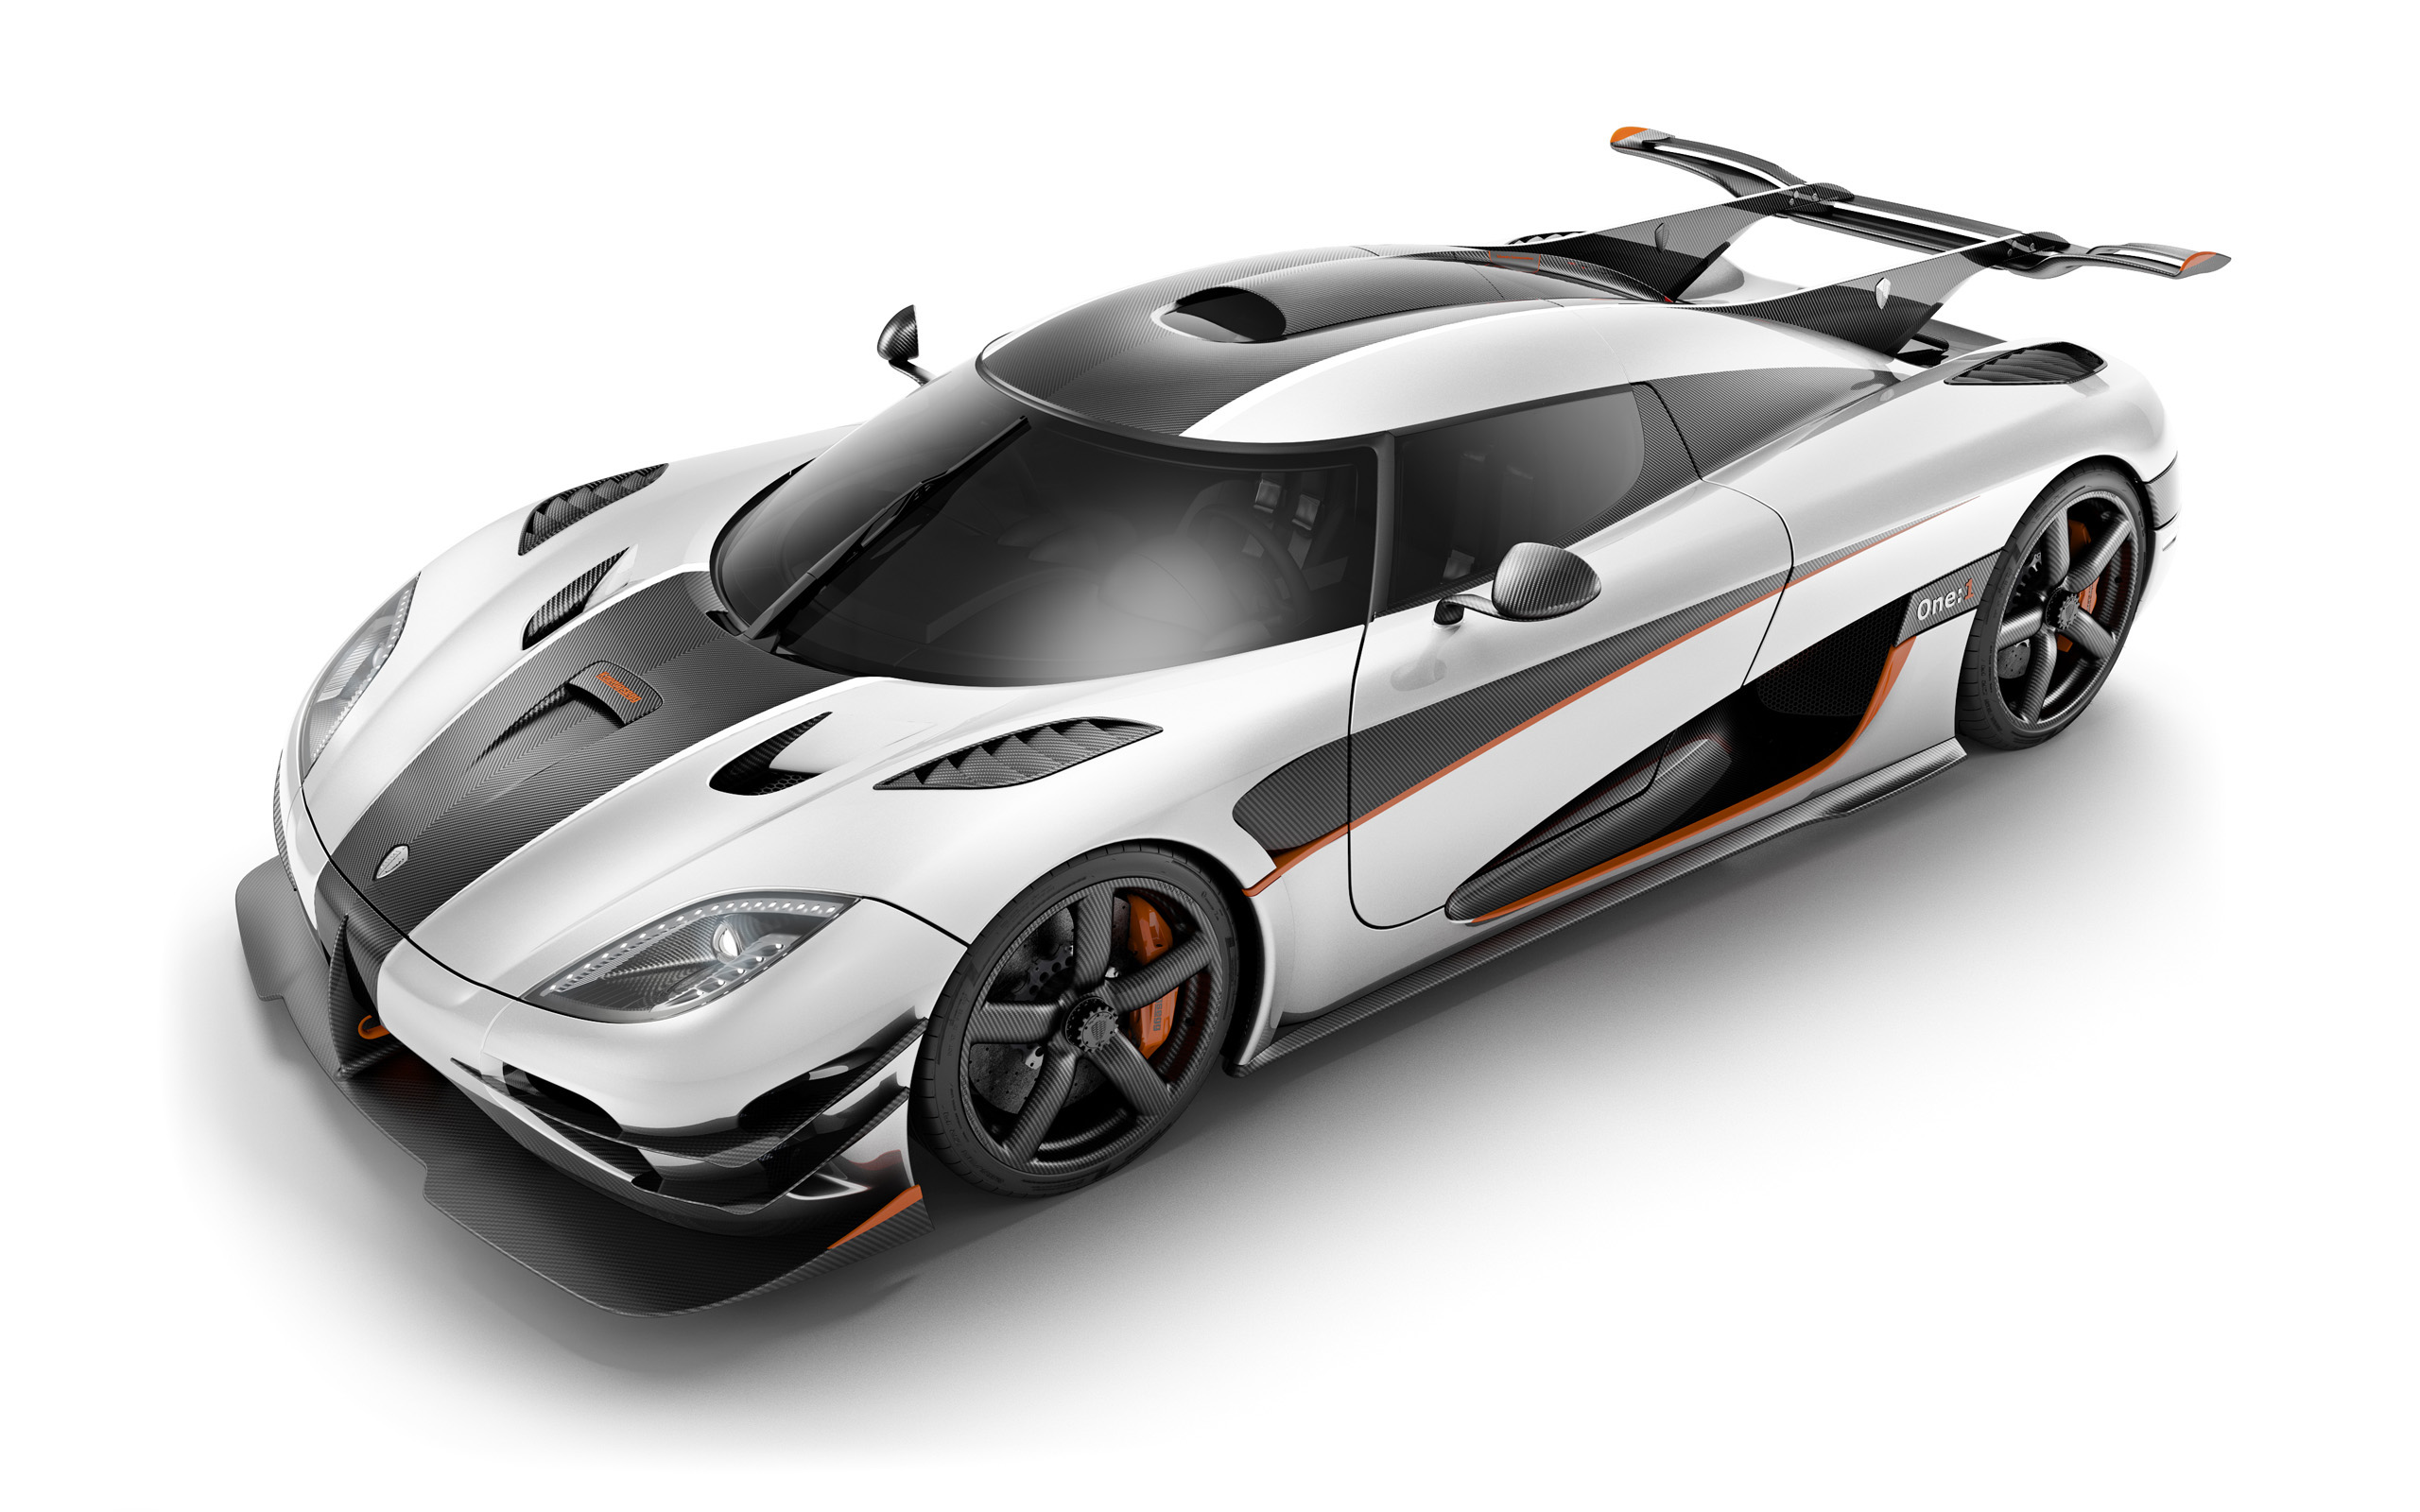 2014 Koenigsegg Agera One 1 Wallpaper HD Car Wallpapers 2560x1600